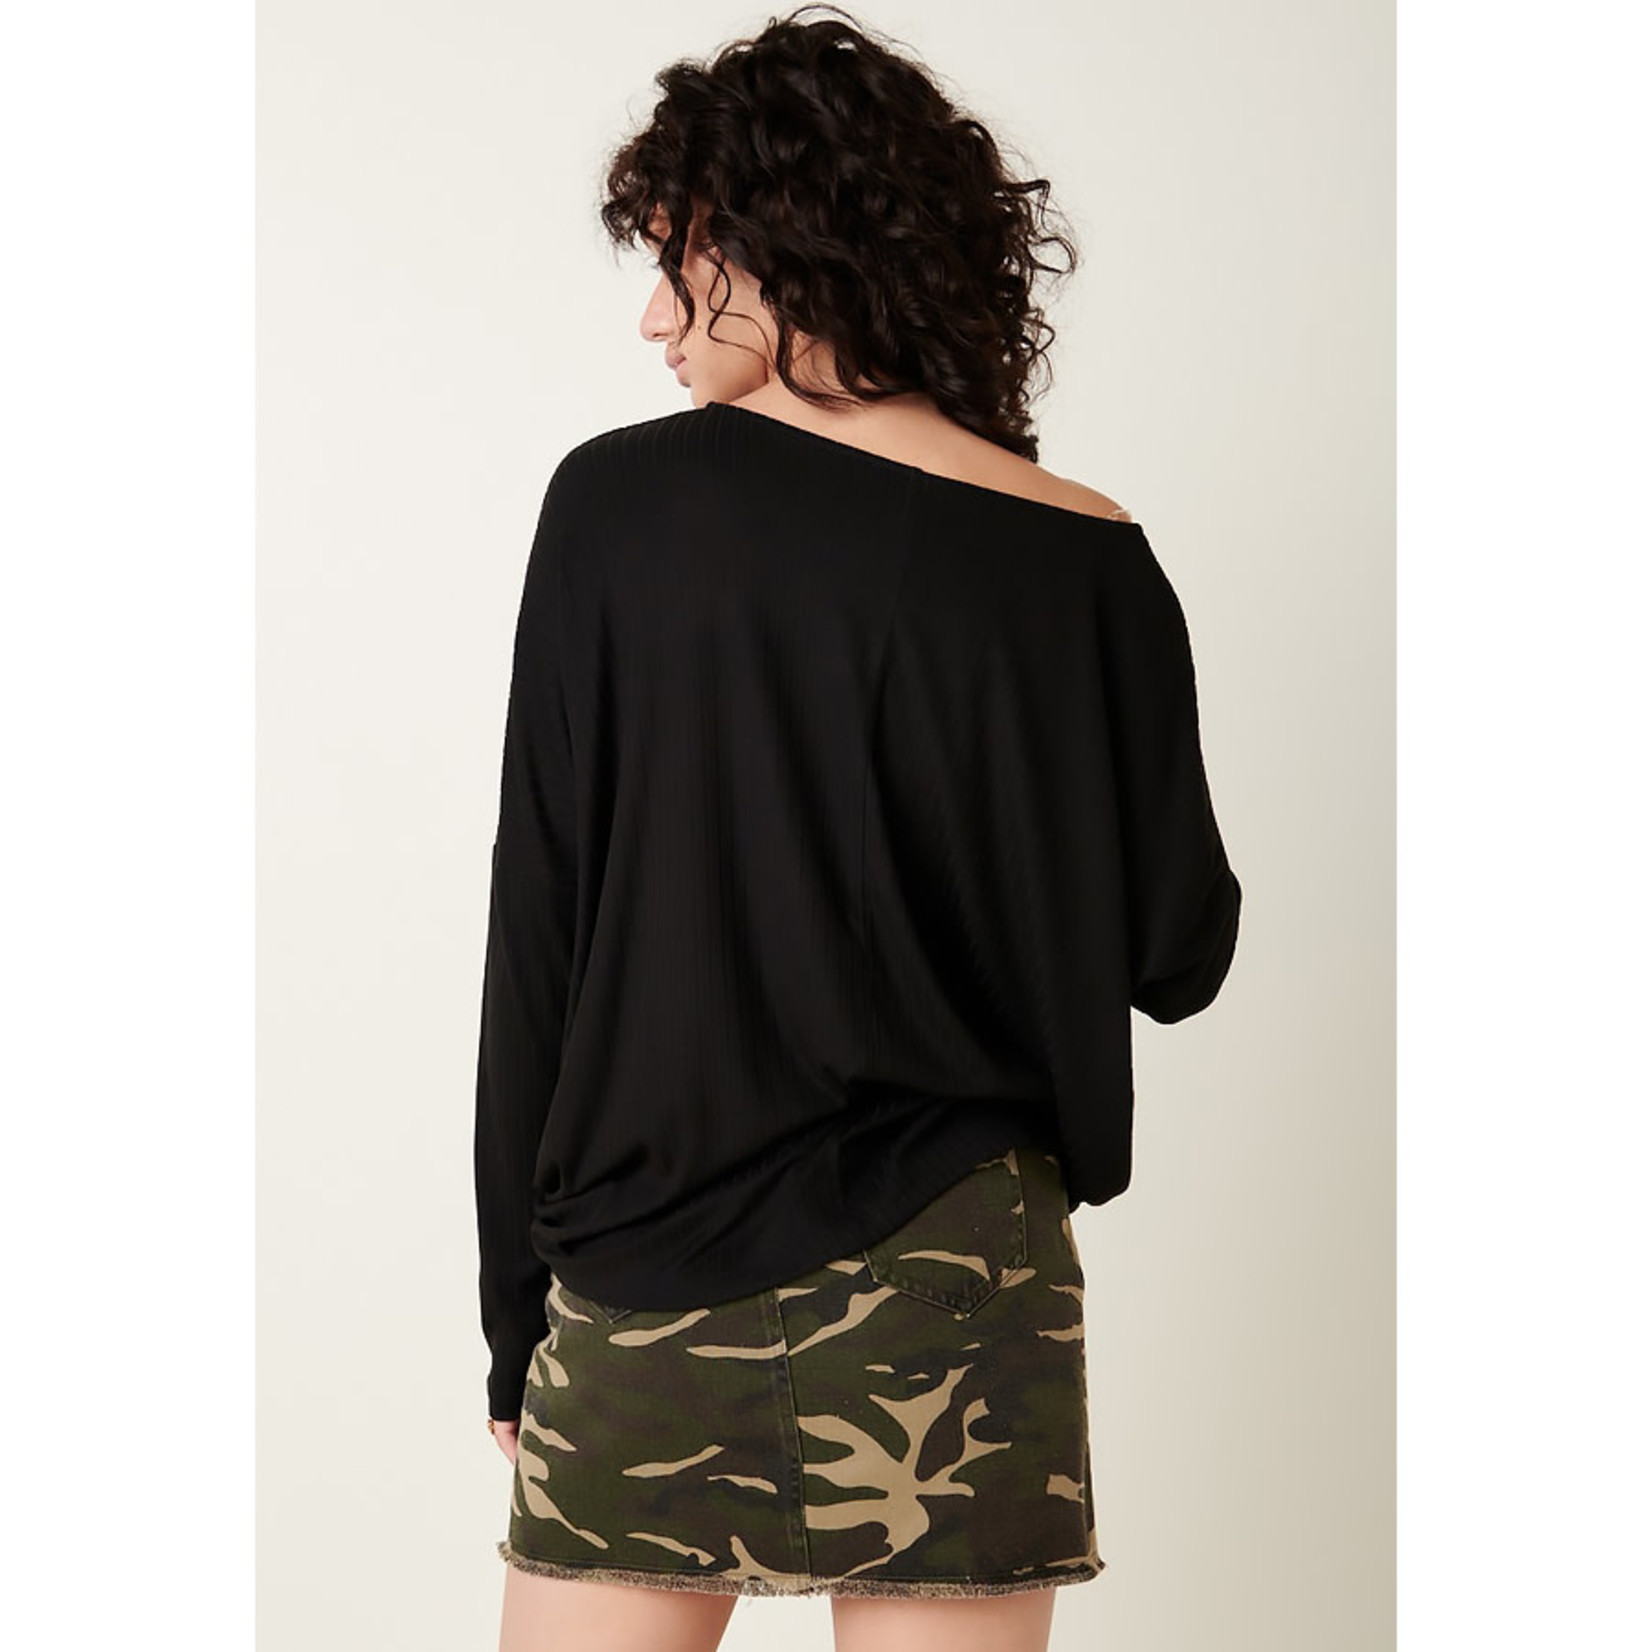 Mittoshop Wherever You Go Long Sleeve Top